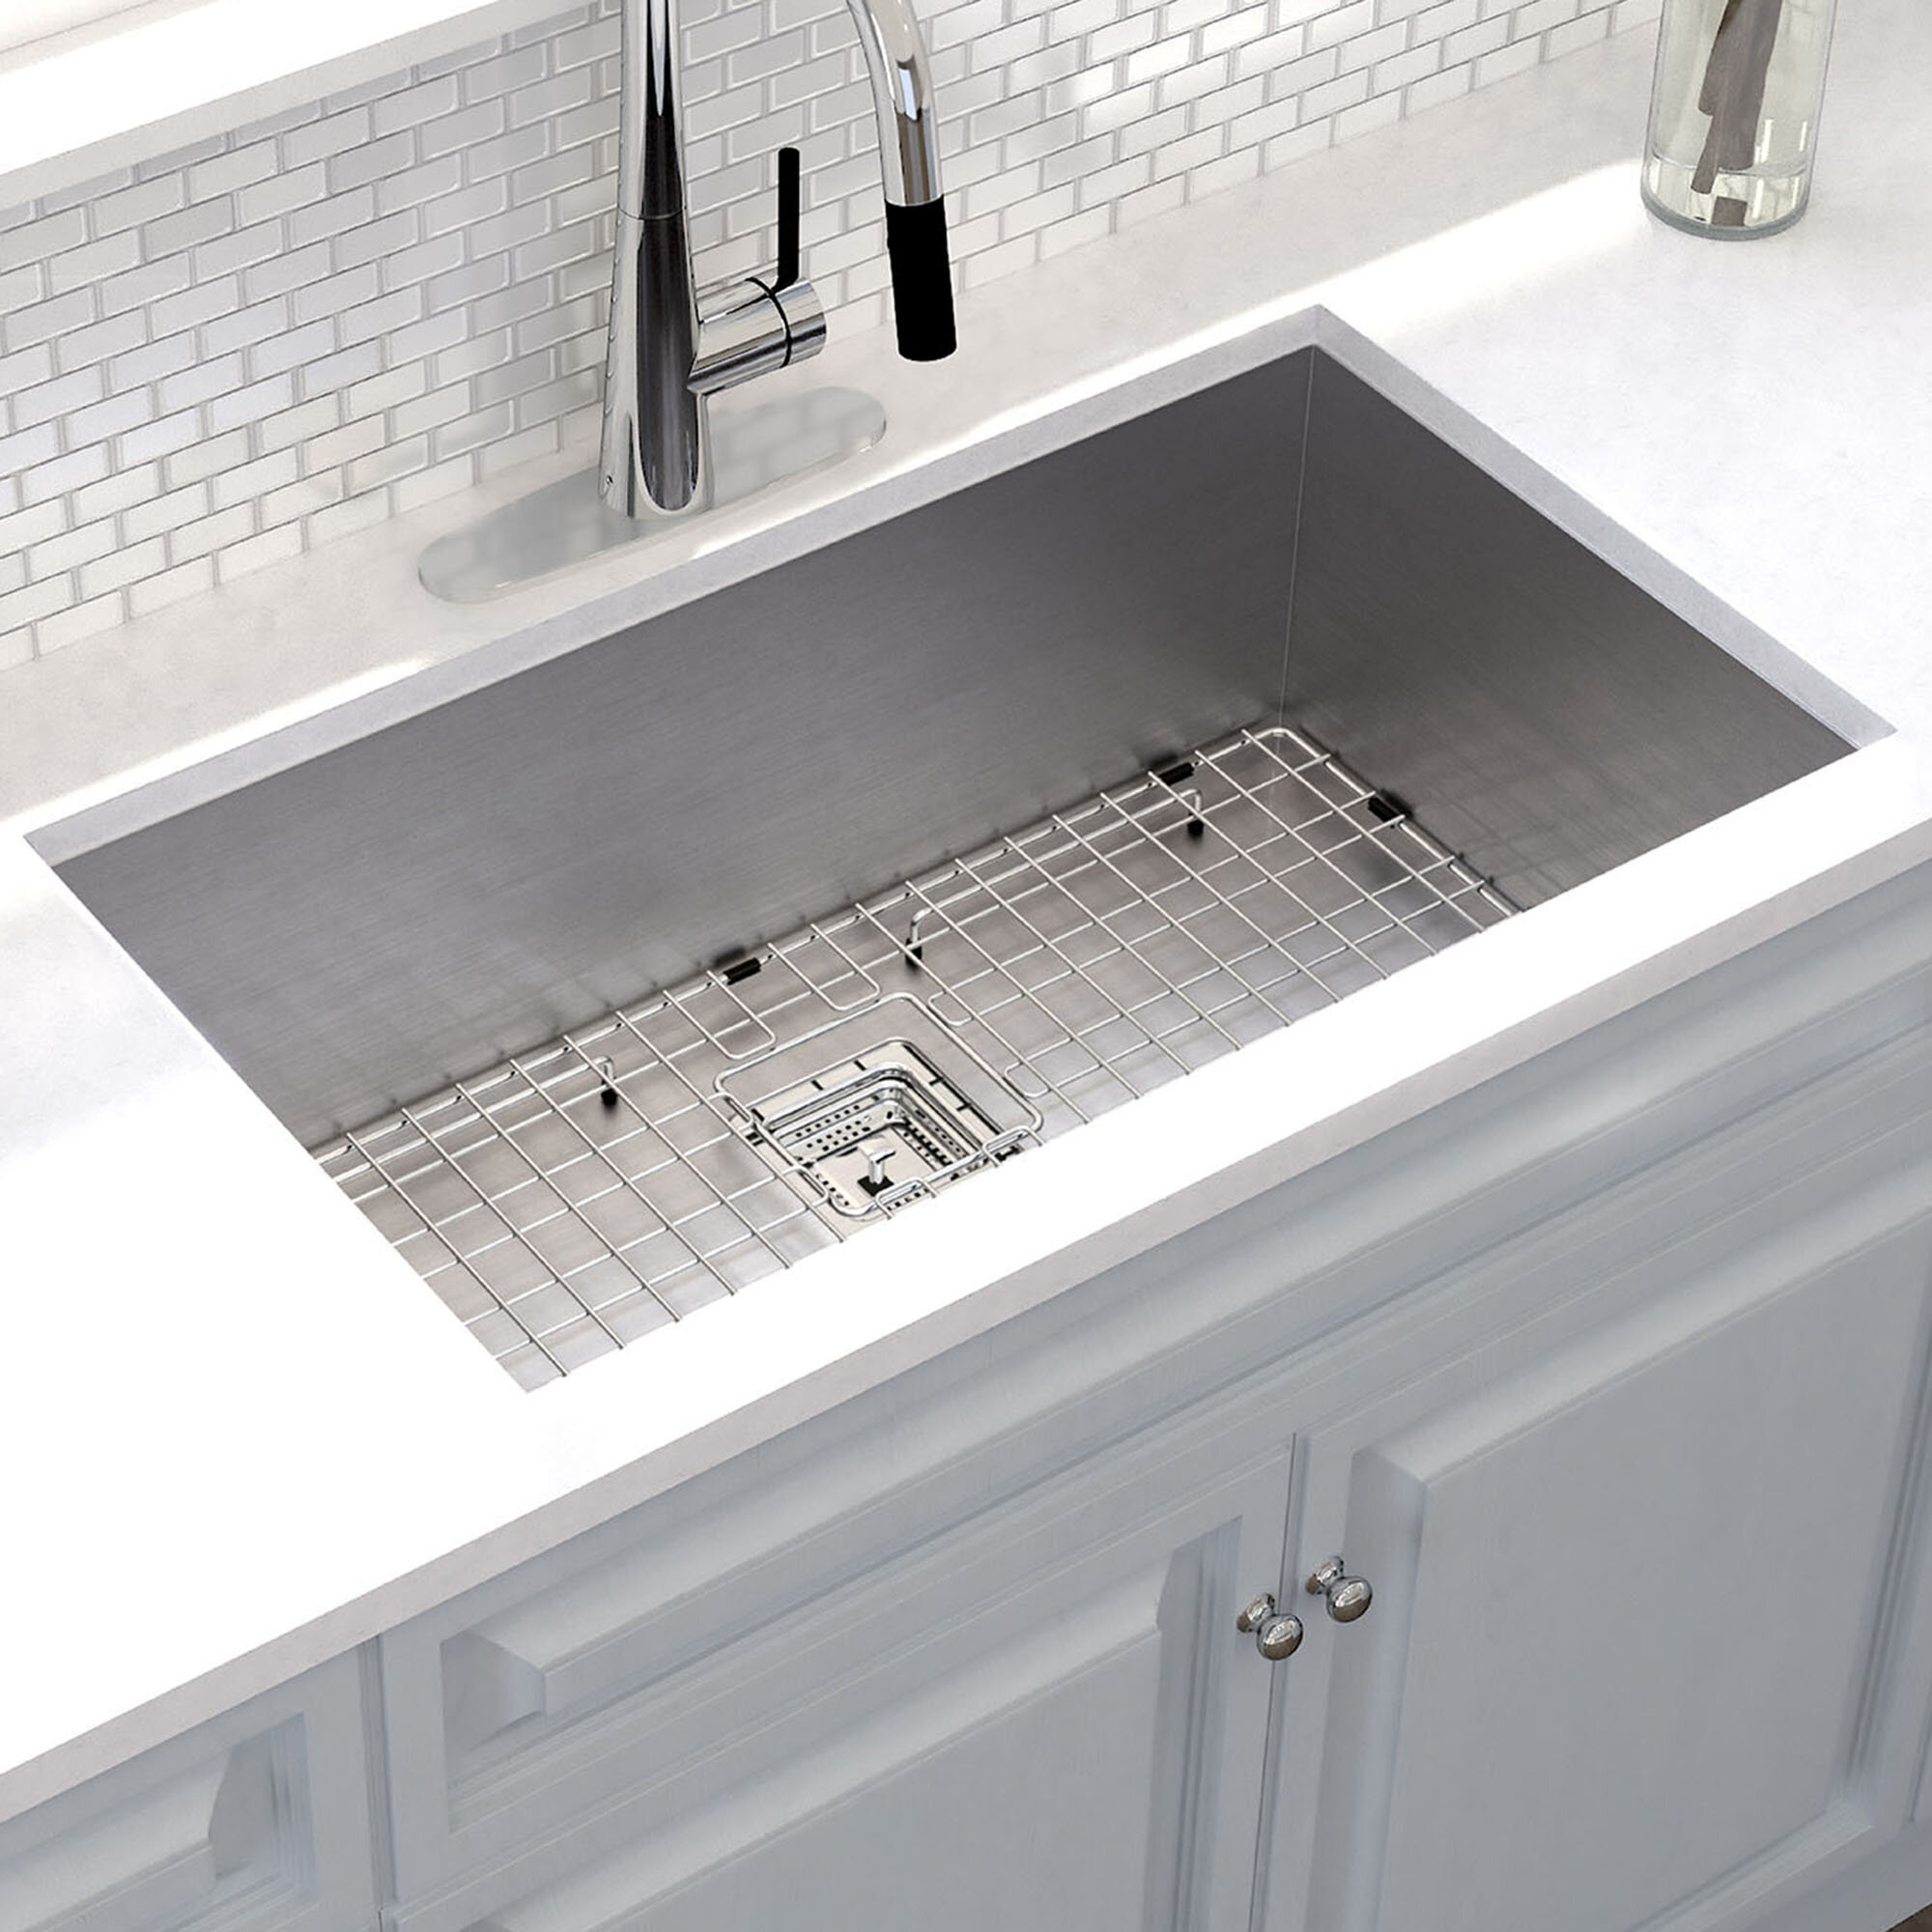 Undermount White Kitchen Sink on white overmount kitchen sink, white porcelain kitchen sink, white marble kitchen sink, rectangle undermount bathroom sink, small white kitchen sink, bisque undermount sink, cast iron porcelain kitchen sink, copper corner kitchen sink, white steel kitchen sinks, white subway tile kitchen, white kitchen with farmers sink, laminate counter with undermount sink, composite granite undermount sink, white single kitchen sink, rohl allia fireclay kitchen sink, elkay undermount double sink, 12-inch drop in sink, white kitchens with corian countertops, used farmhouse kitchen sink, single bowl offset kitchen sink,